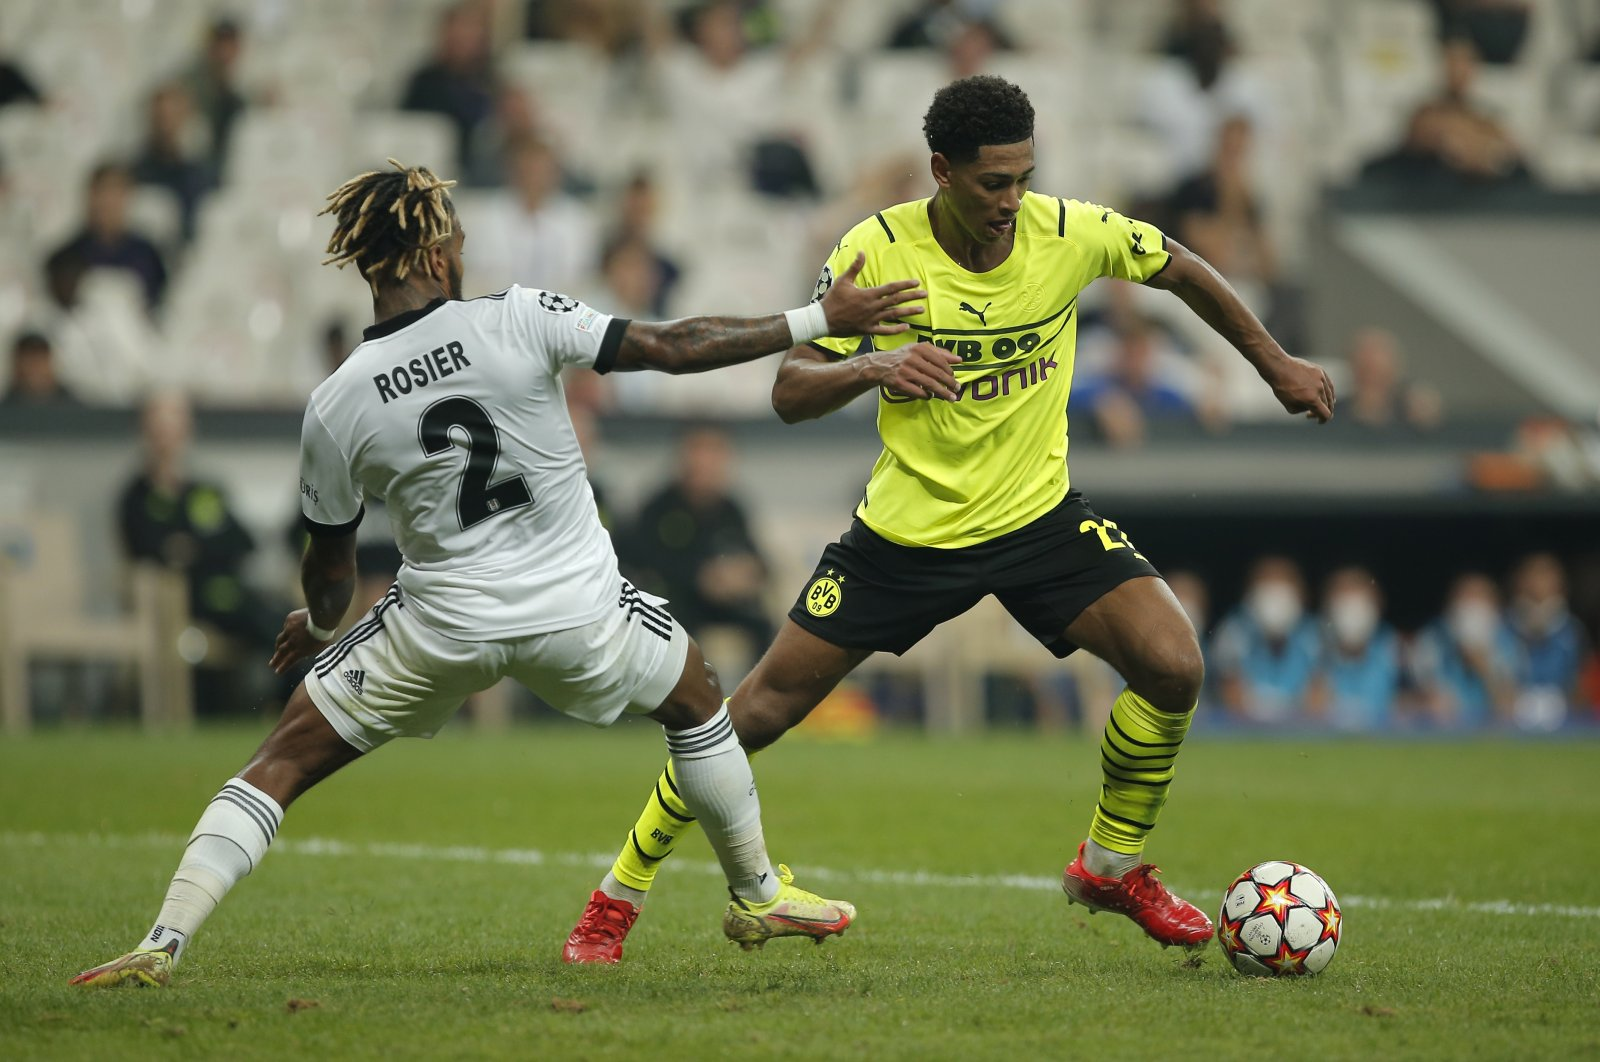 Beşiktaş's Valentin Rosier (L) challenges for the ball with Dortmund's Jude Bellingham during the Champions League Group C soccer match between Beşiktaş and Borussia Dortmund at the Vodafone Park Stadium in Istanbul, Turkey, Sept. 15, 2021. (AP Photo)